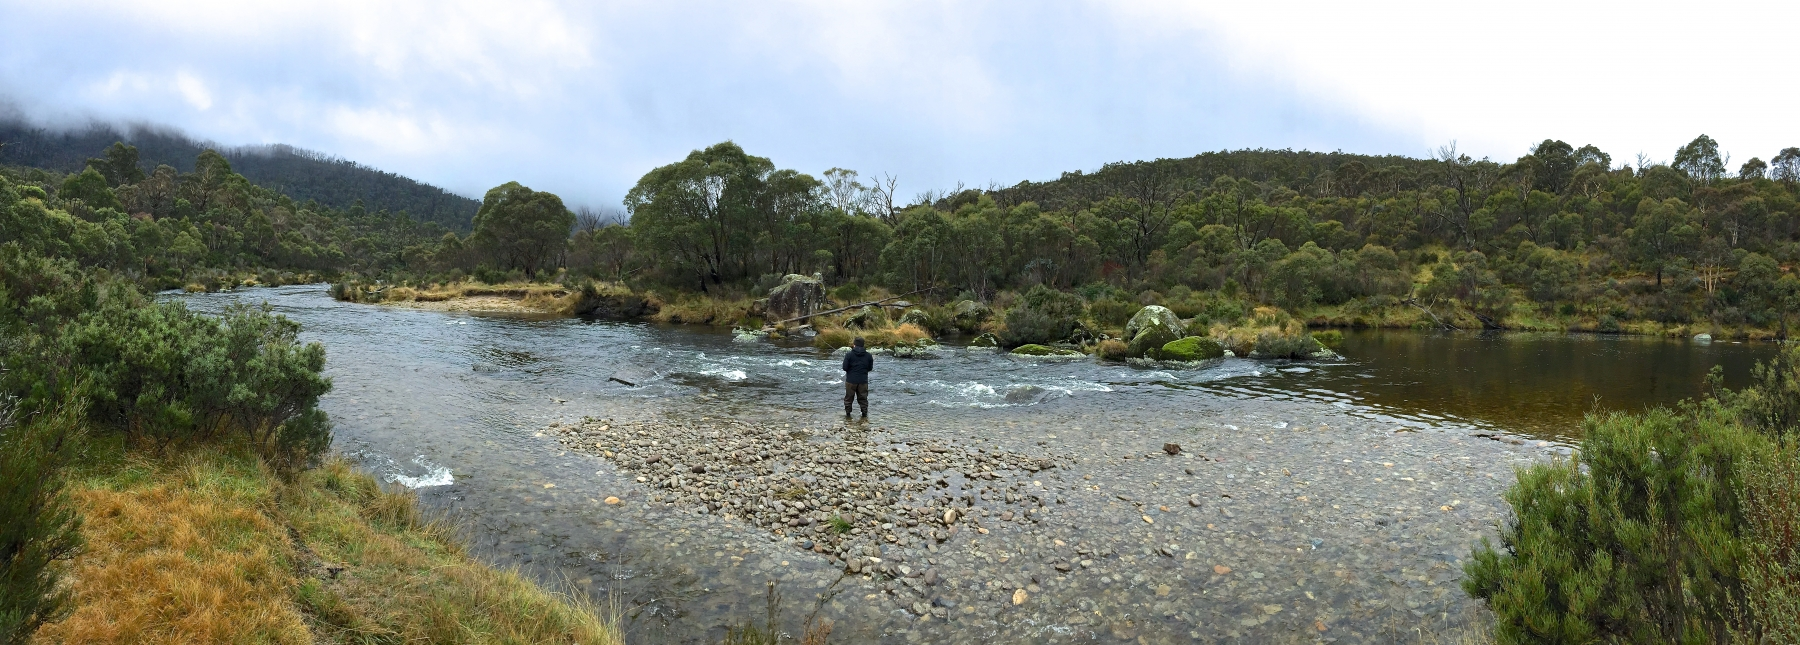 Fishing the nearby Thredbo River